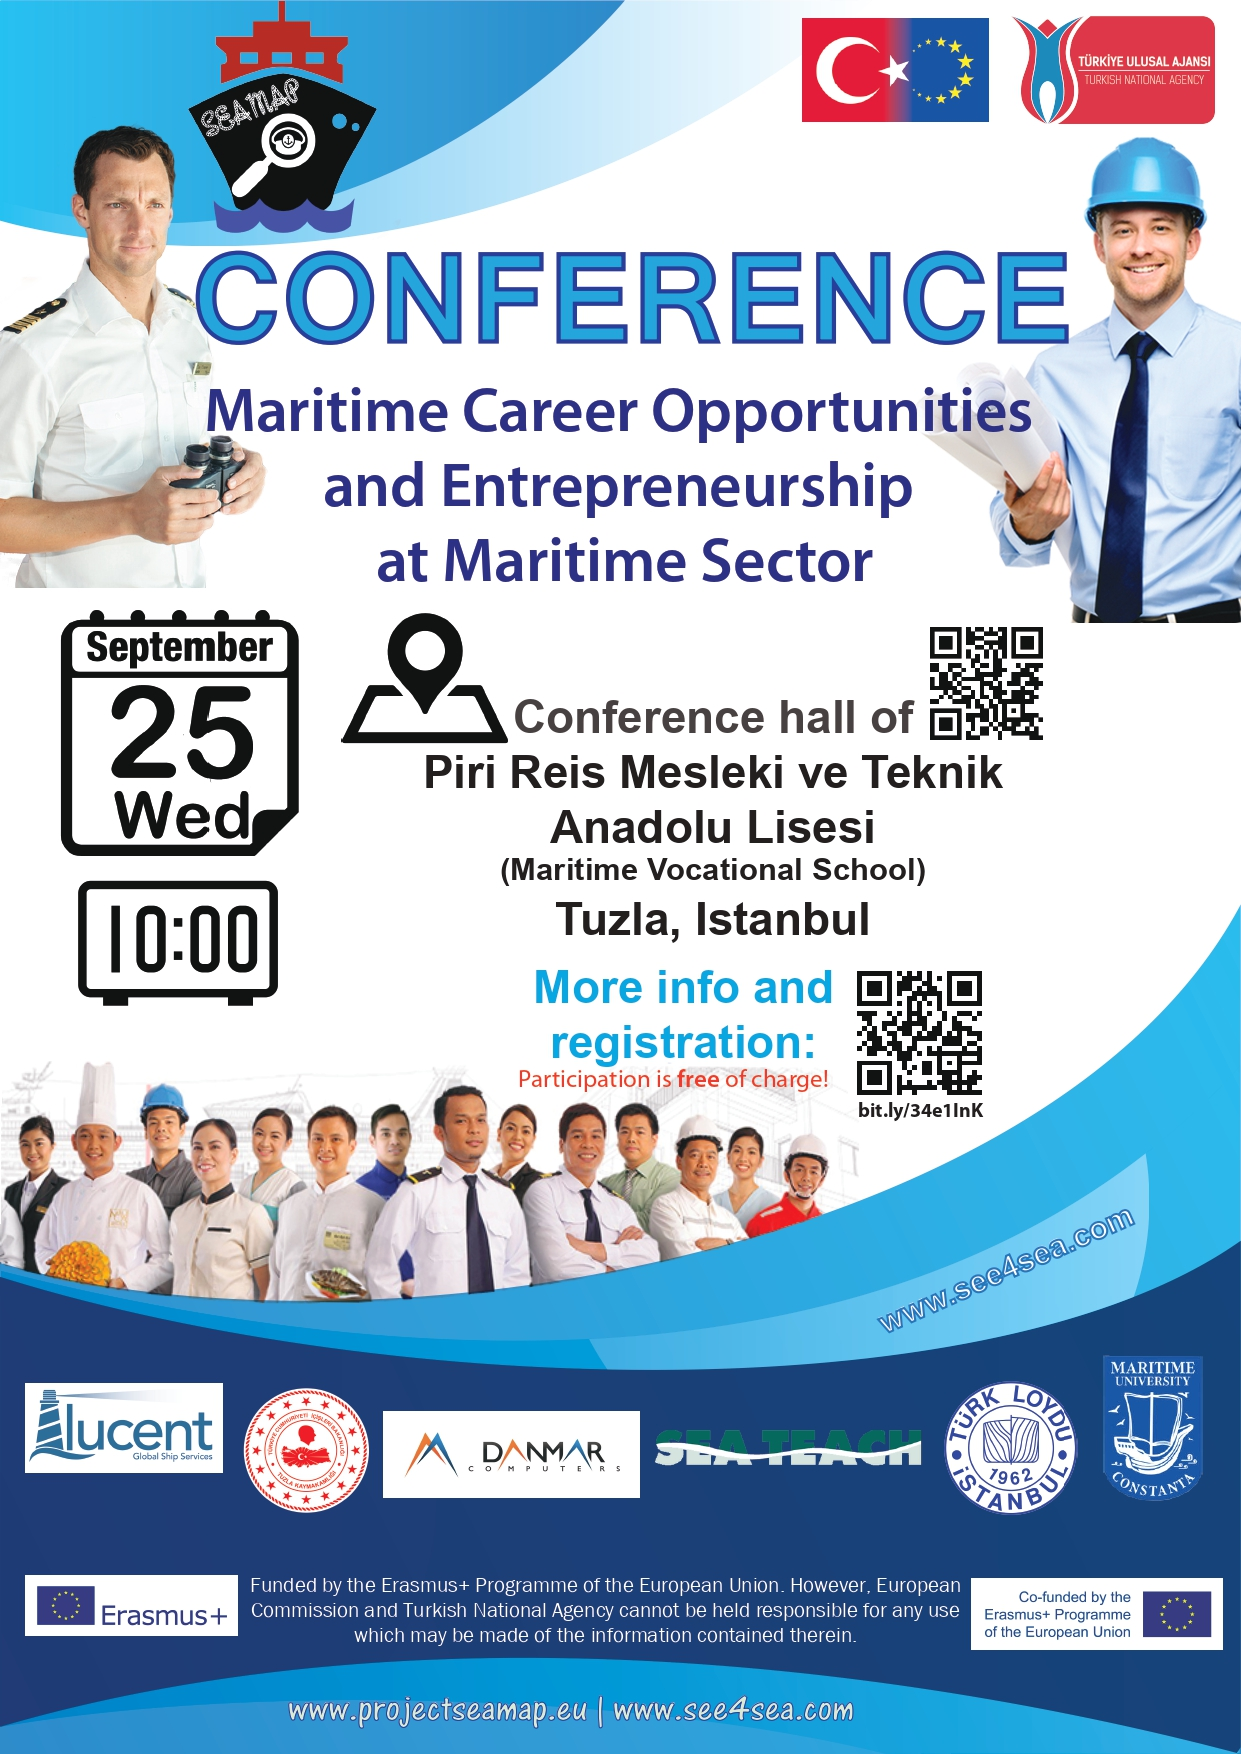 poster-conference-seamap-image.jpg